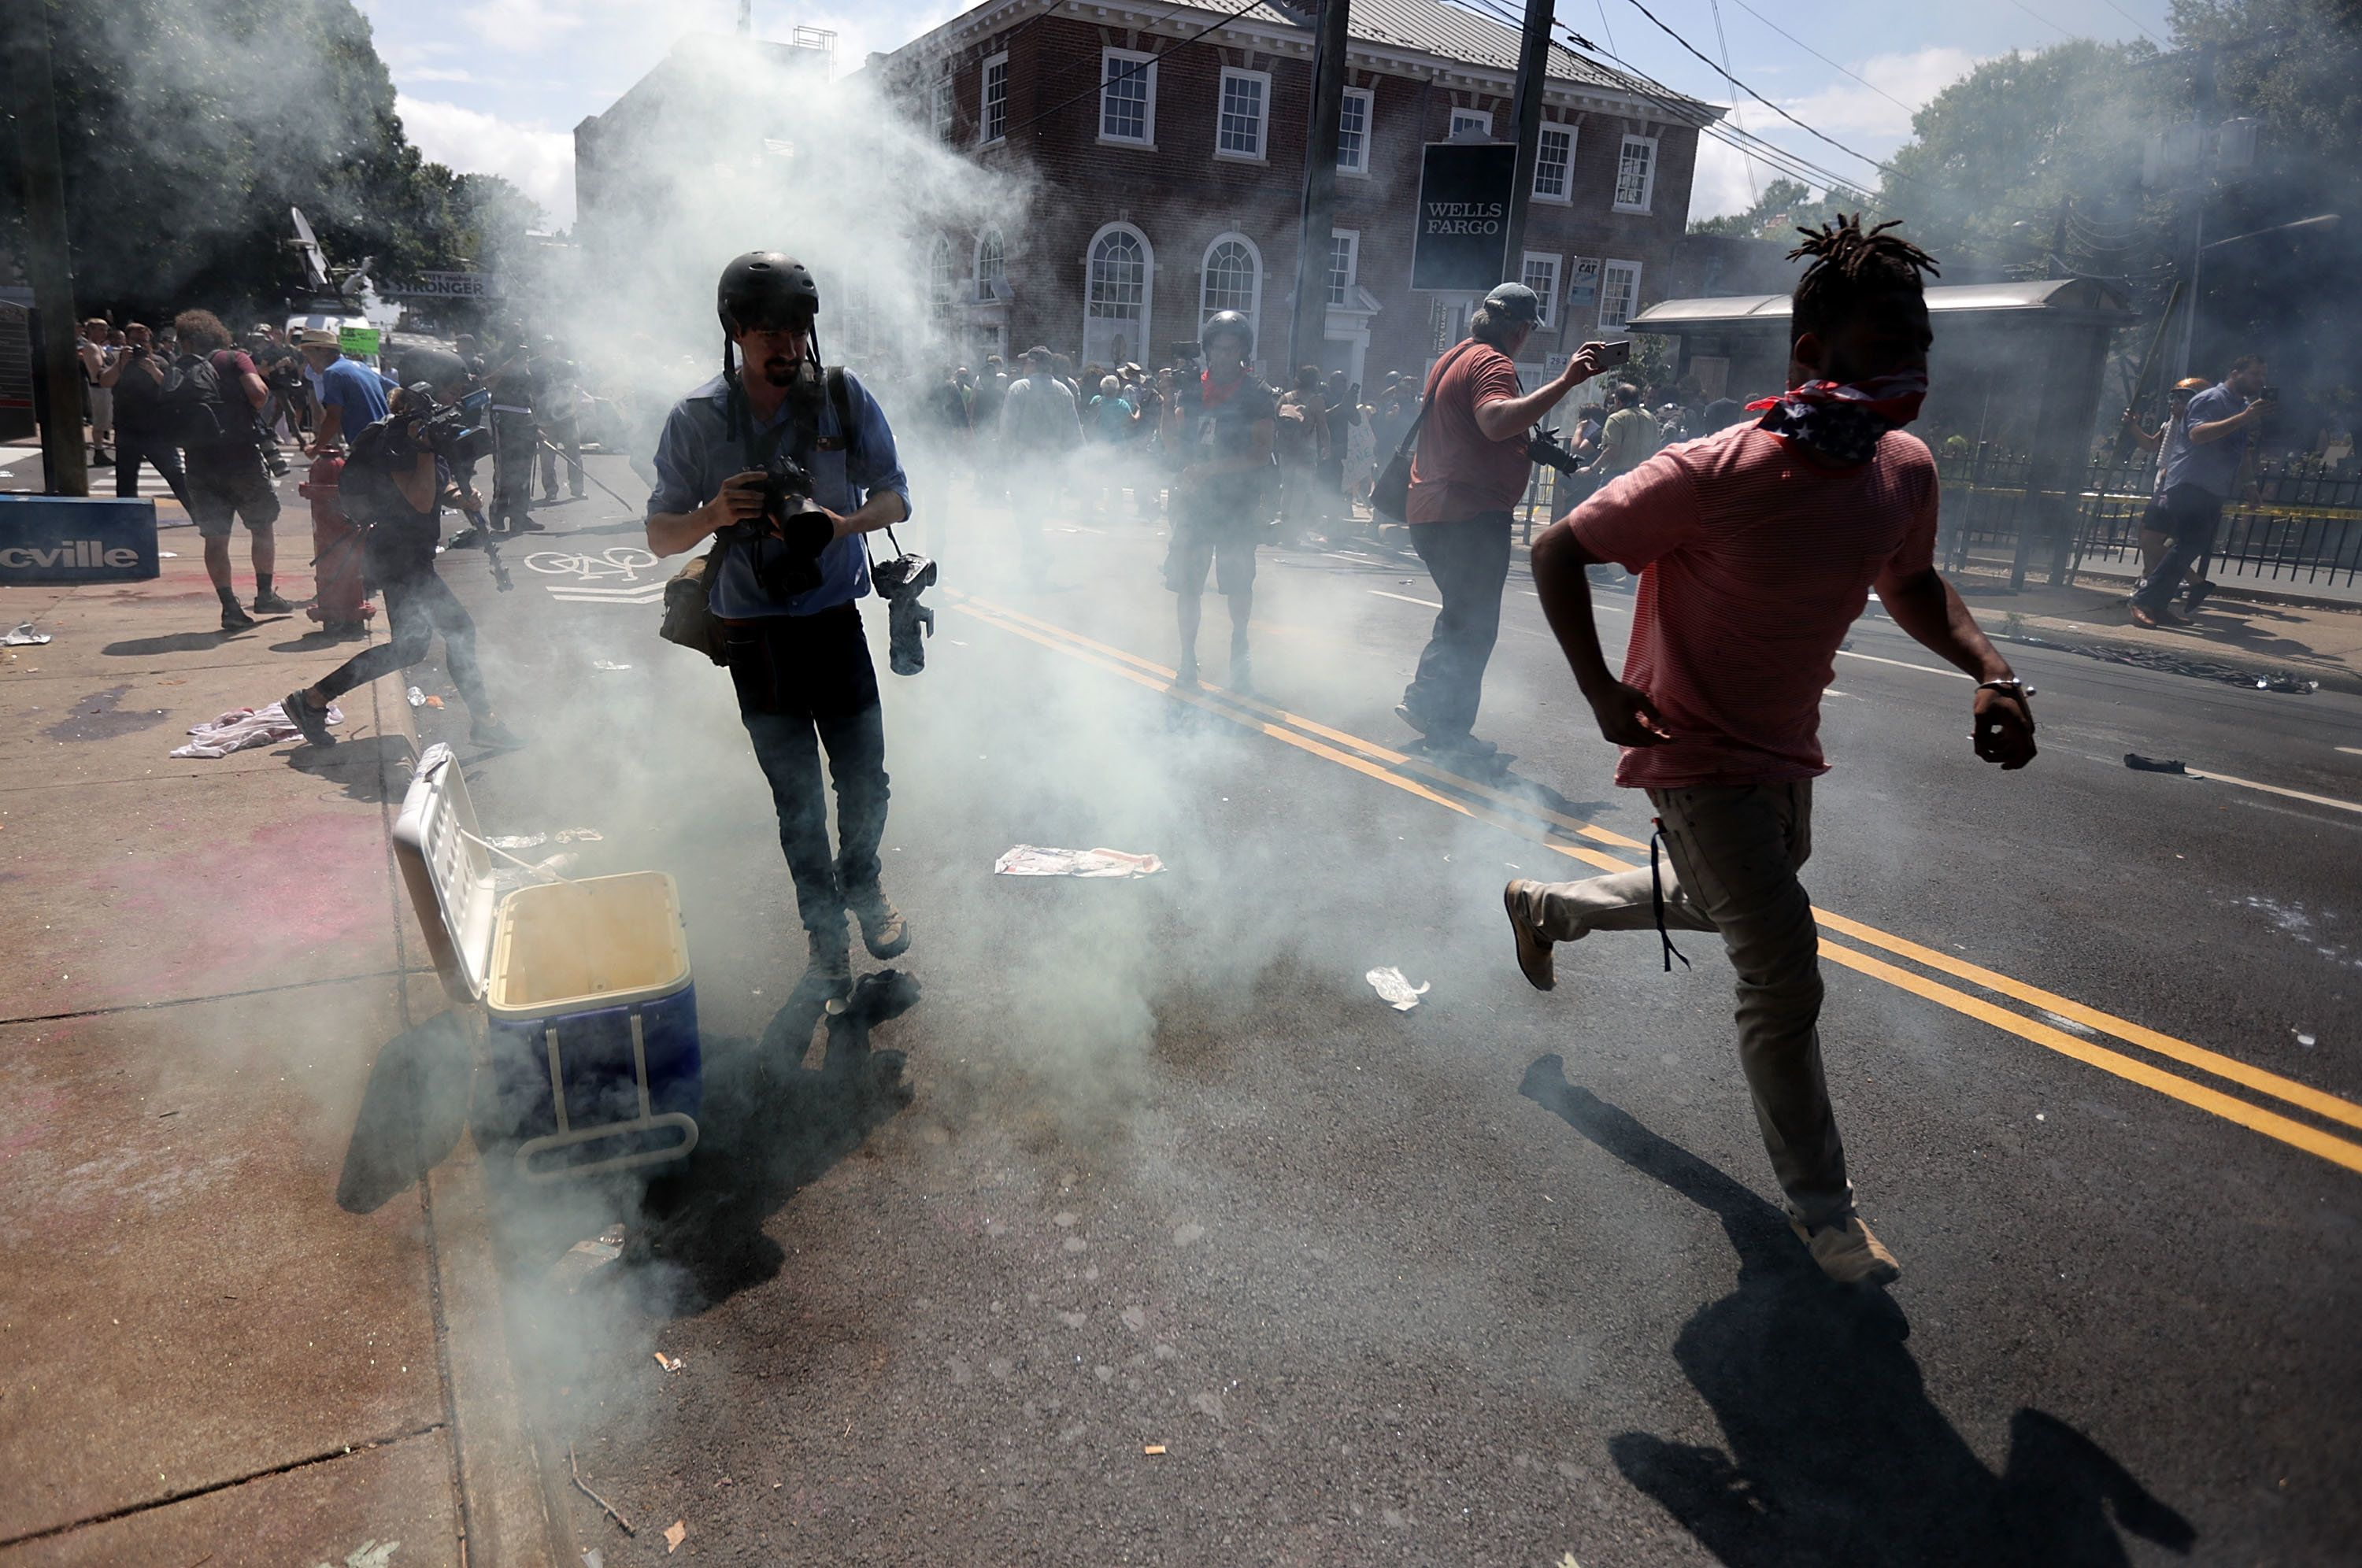 Protesters and journalists pull back after tear gas was used during the Unite the Right rally on Aug. 12, 2017, in